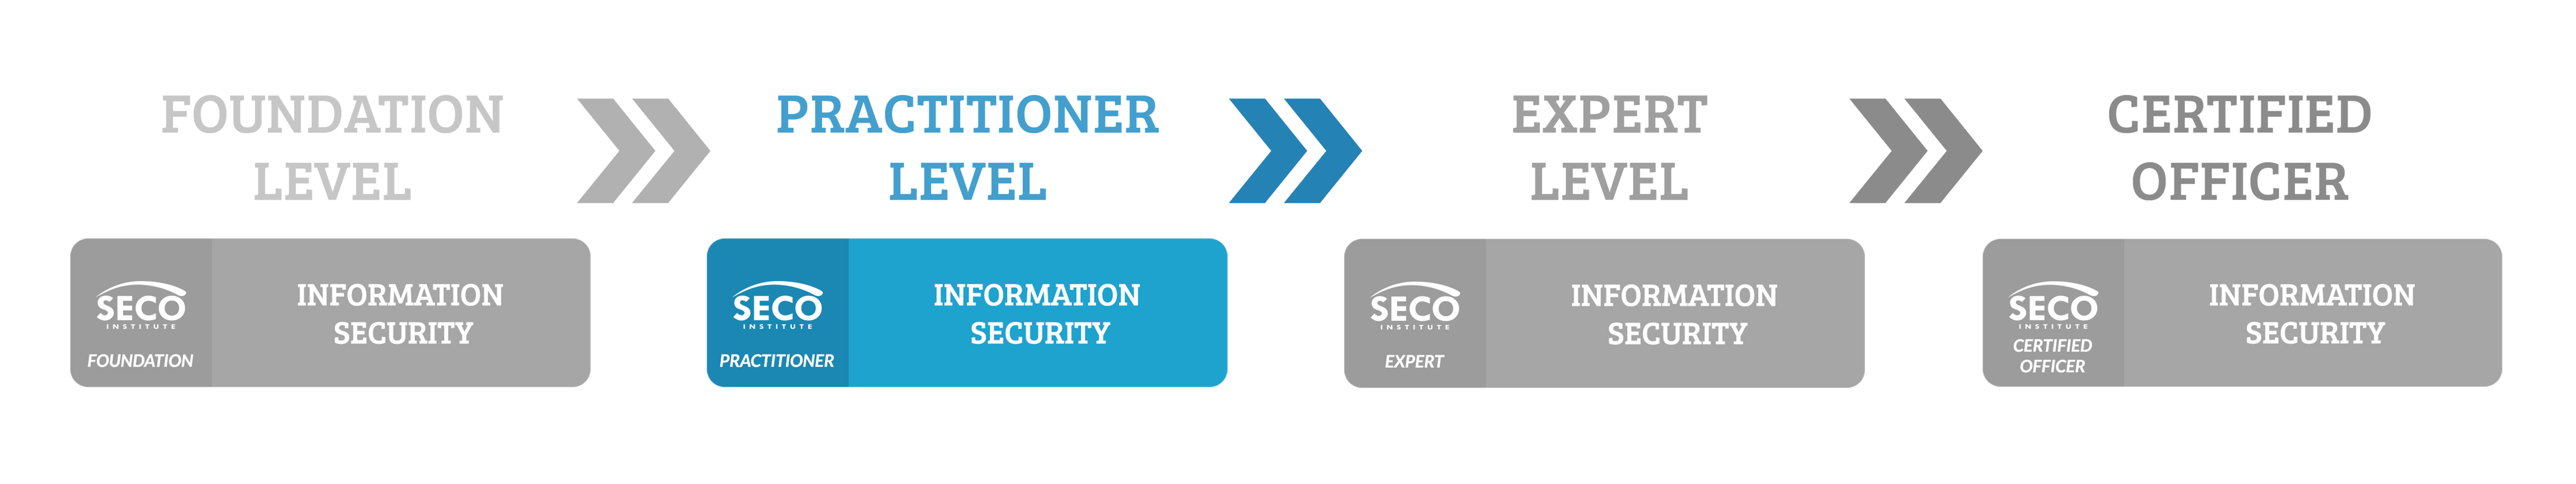 SECO-Institute Certification Track Information Security Practitioner